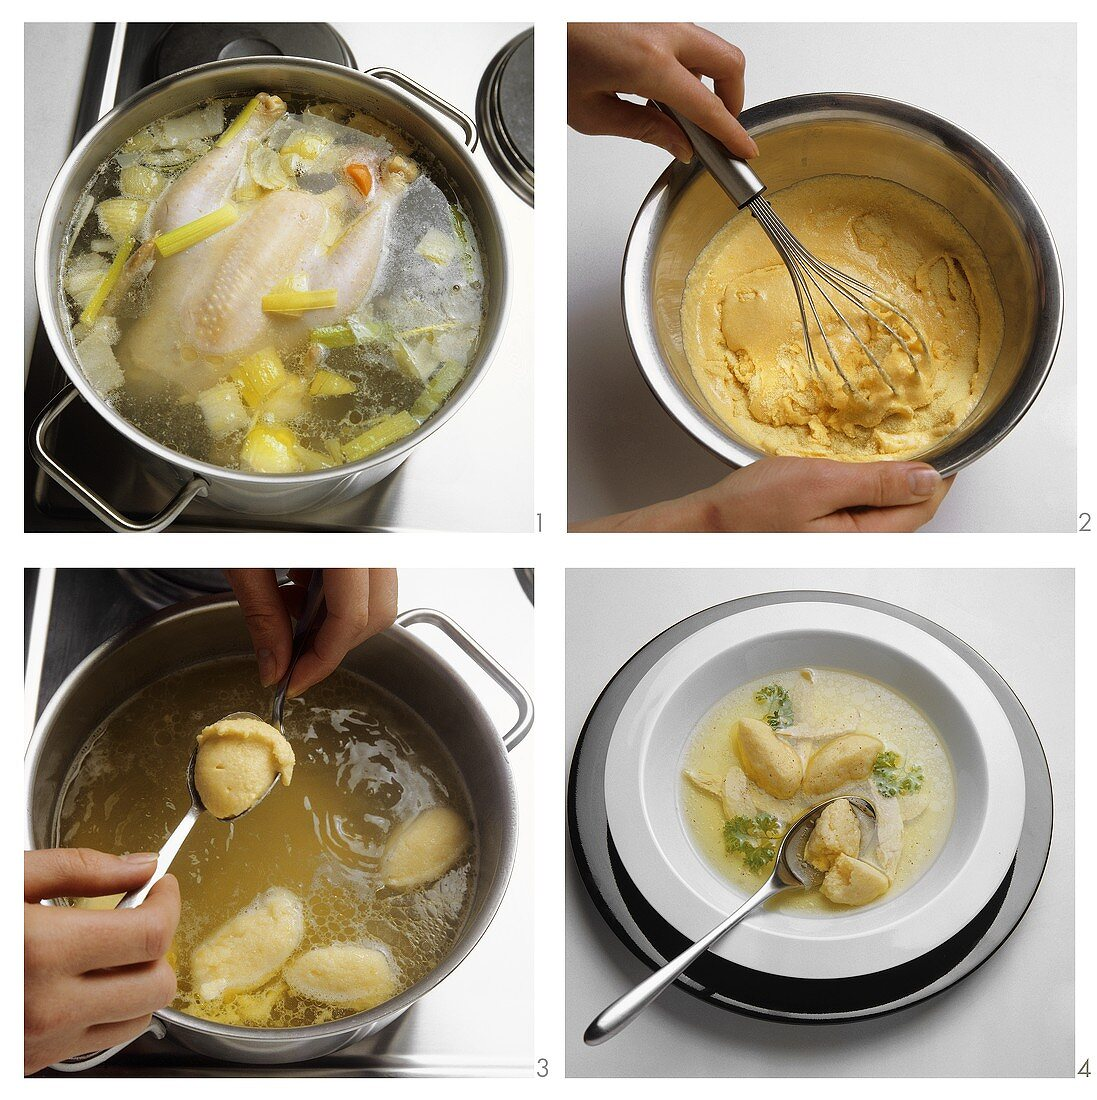 Making chicken soup with semolina dumplings